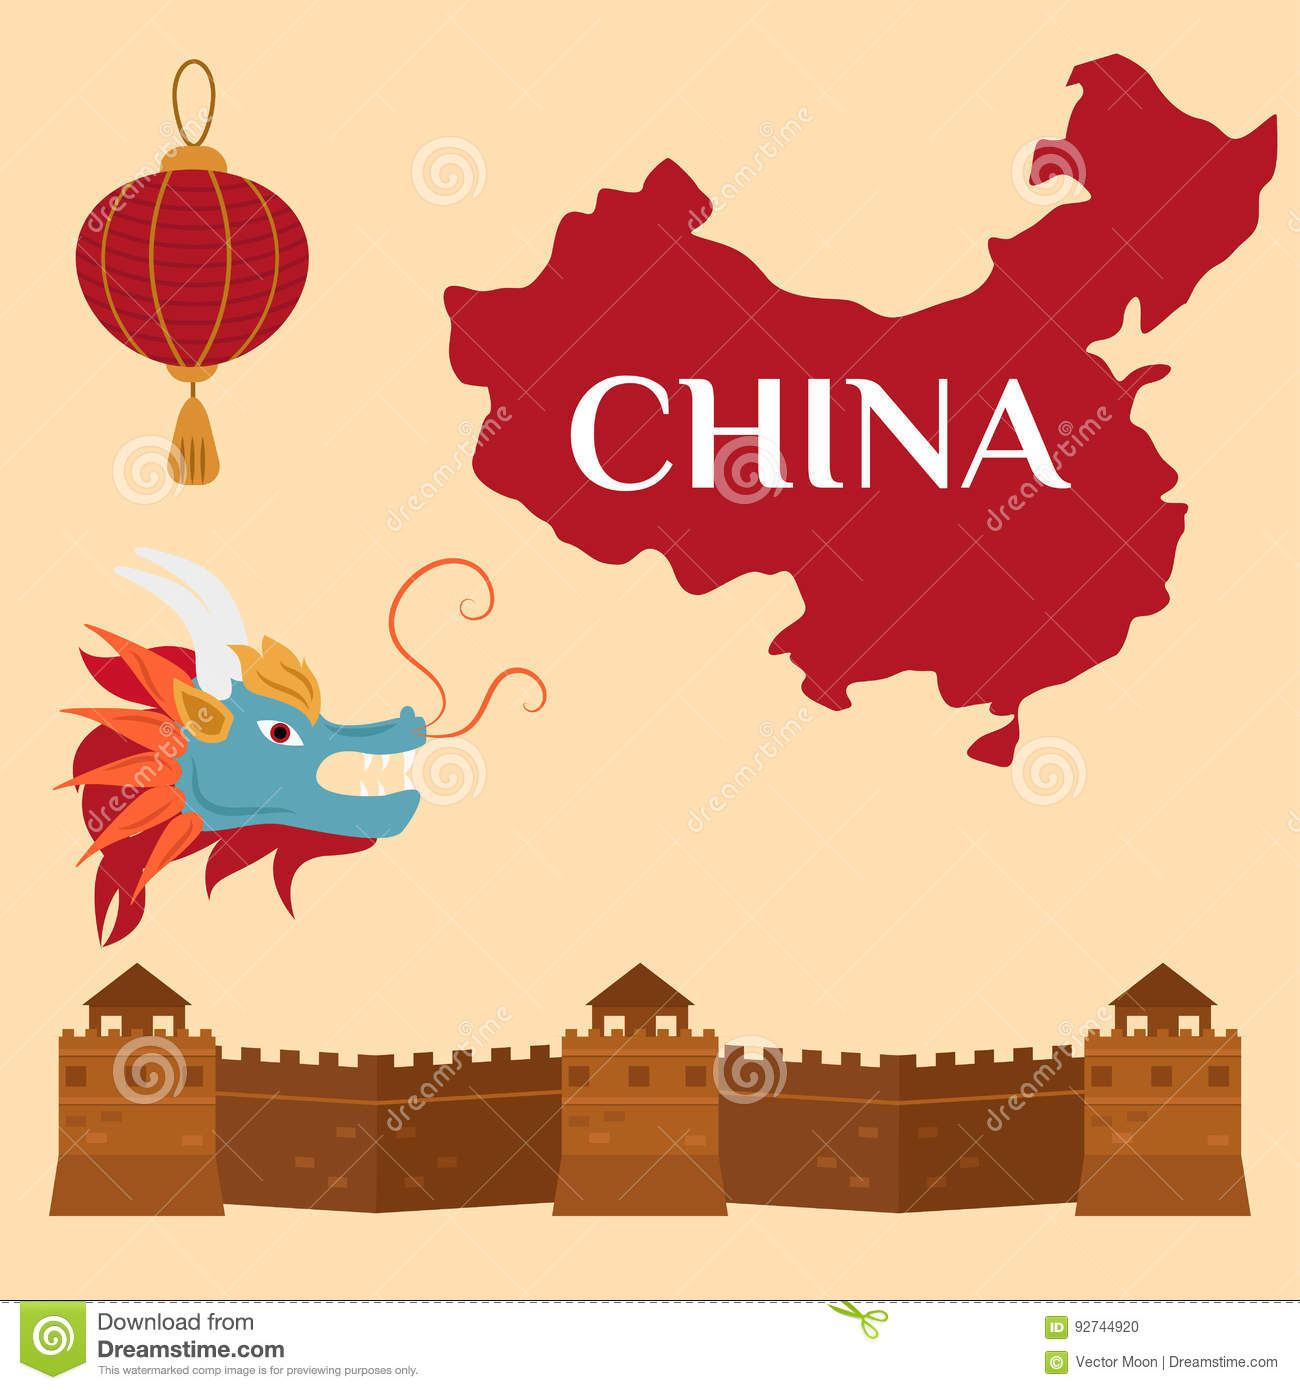 Magnificent Great Wall Of China Coloring Page Ideas - The Wall Art ...